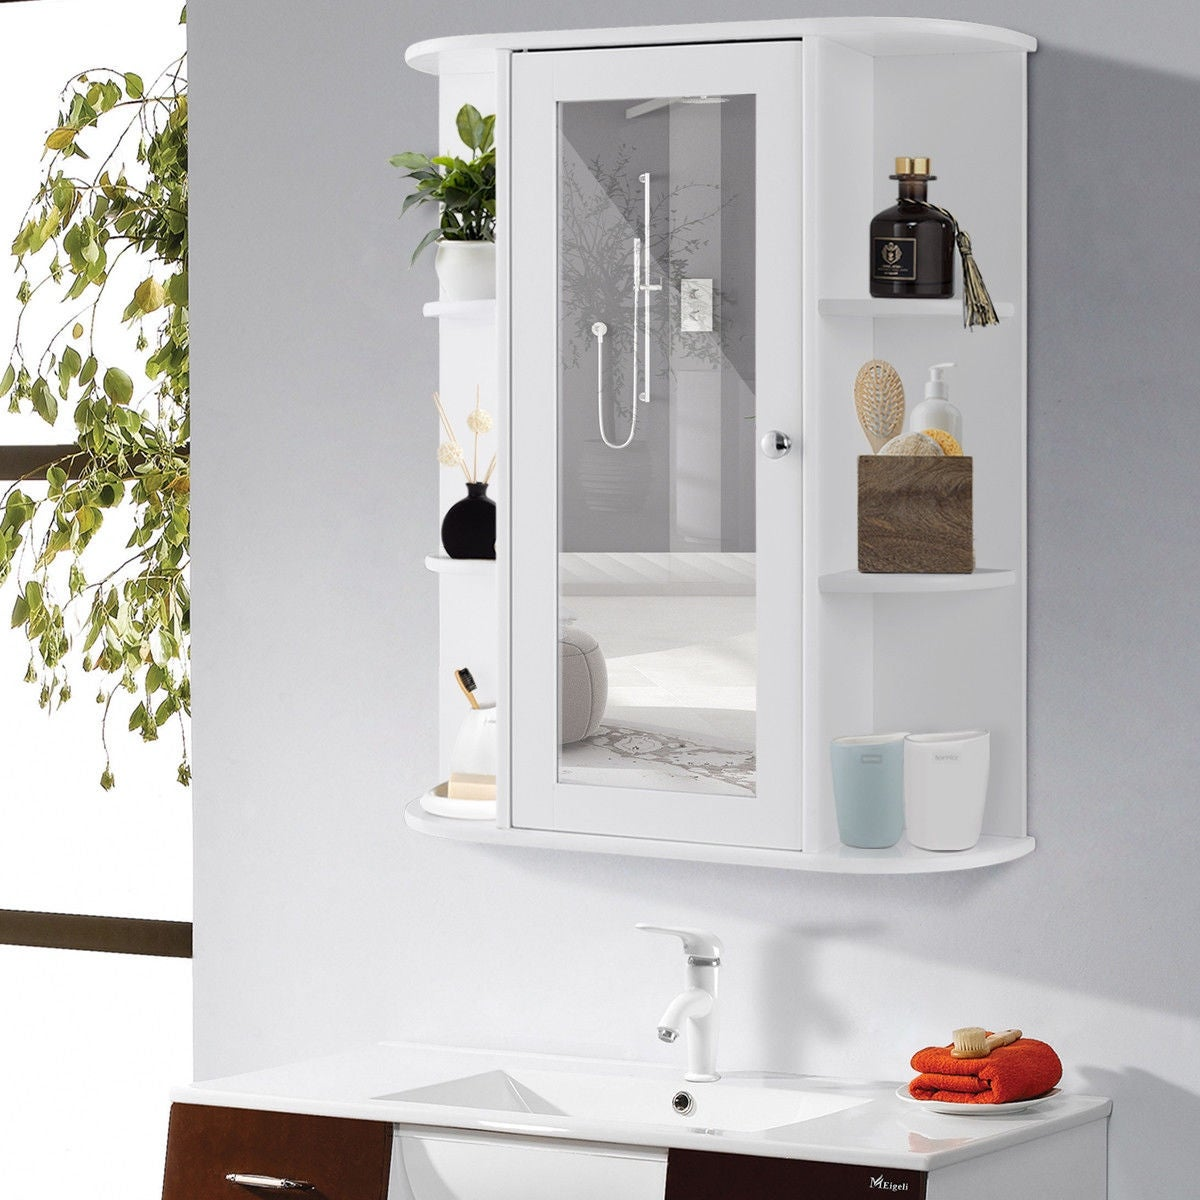 Gymax Bathroom Cabinet Single Door Shelves Wall Mount W Mirror Organizer